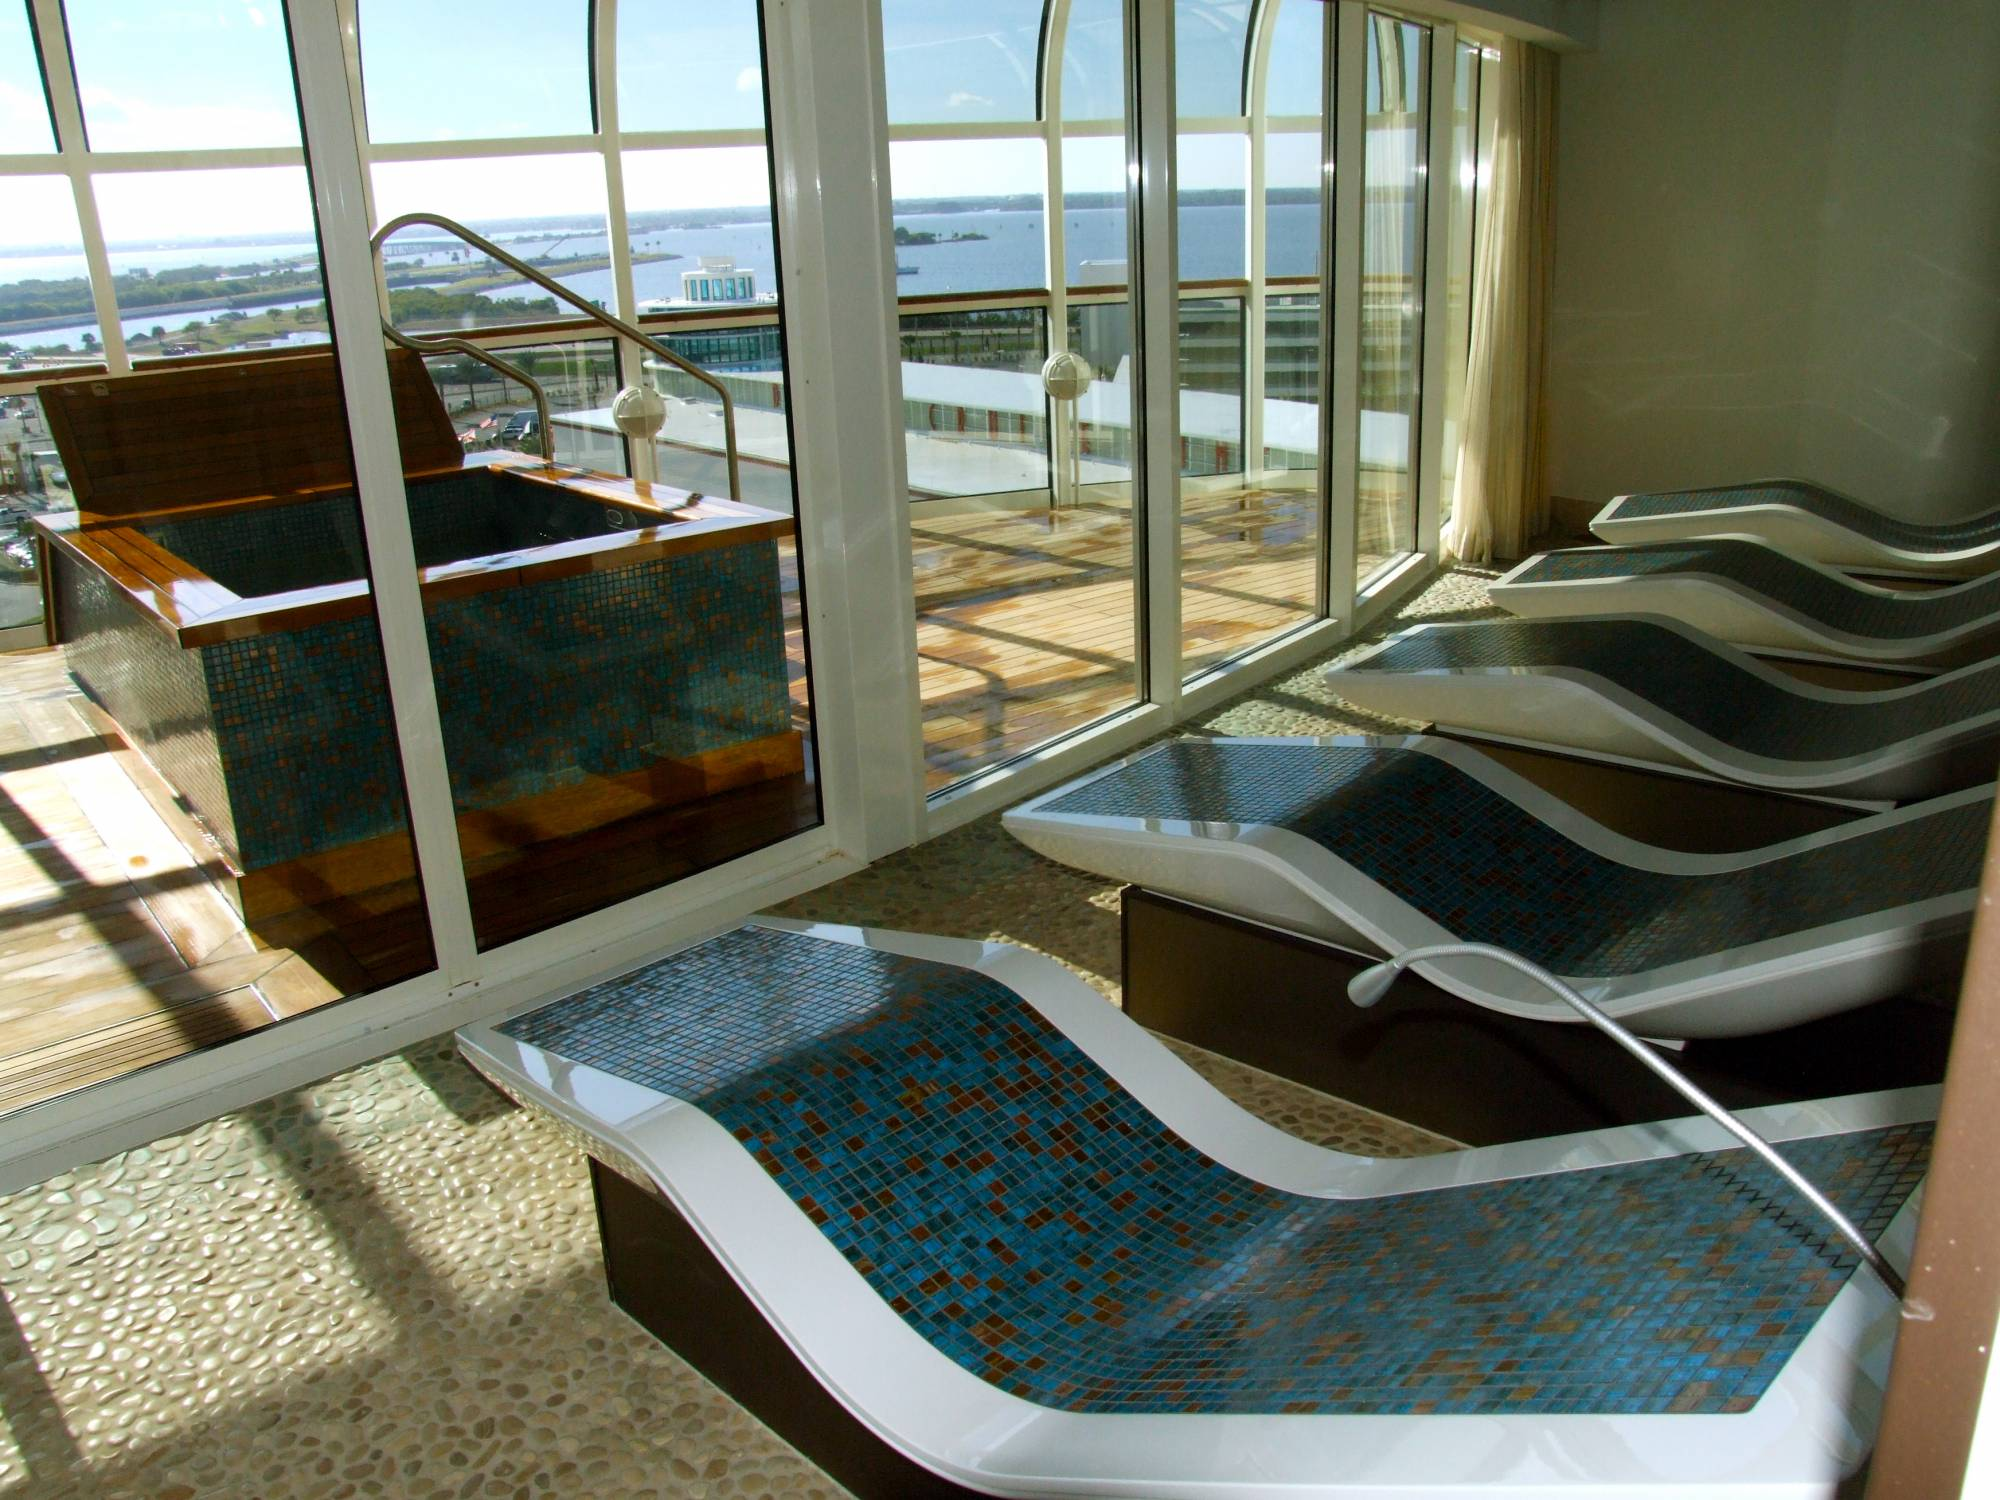 Relax and enjoy at the Spas onboard the Disney Cruise Line |PassPorter.com